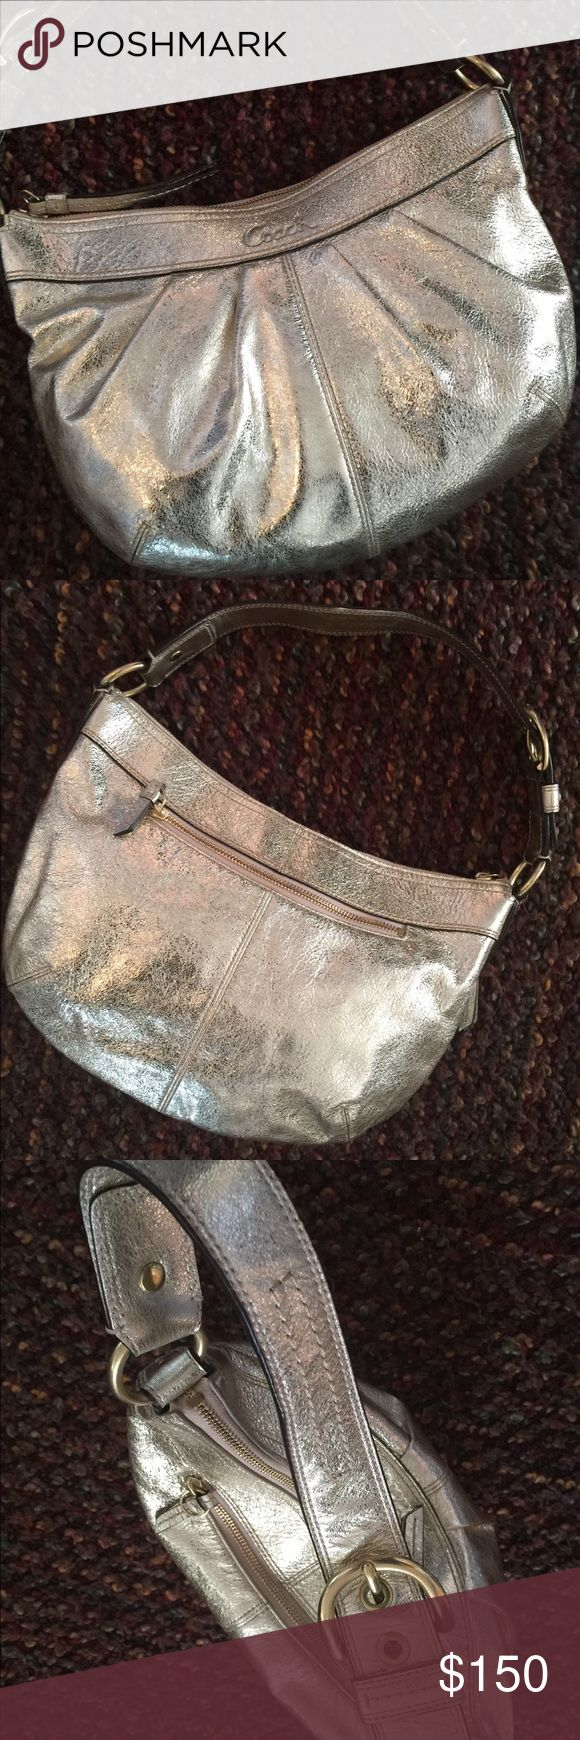 Coach Hobo handbag (gently loved) Soho pleated metallic hobo handbag in platinum gold. Perfect for any time to accent any outfit Coach Bags Shoulder Bags